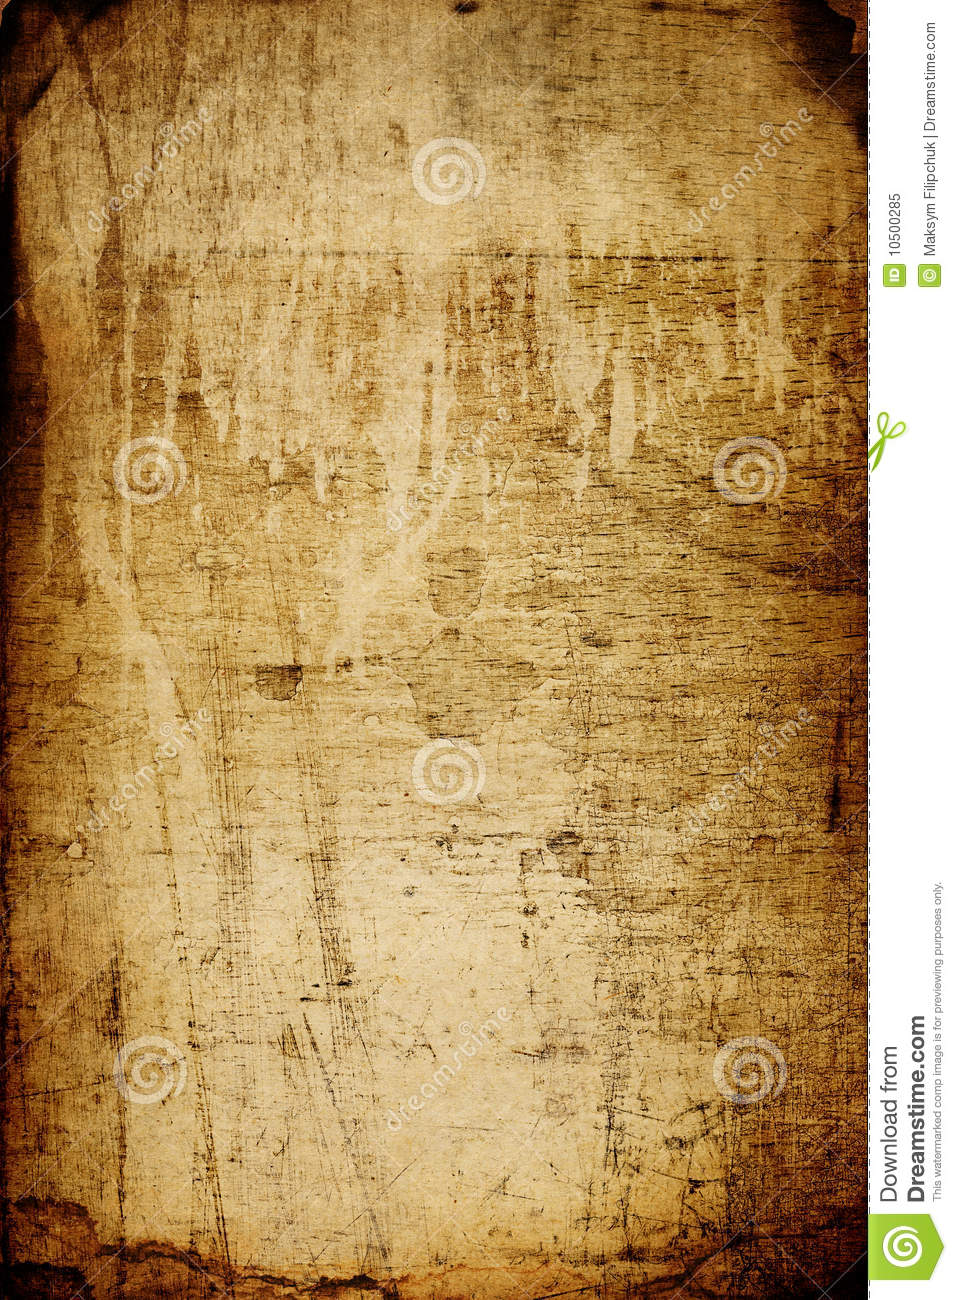 Abstract Grunge Texture Clipart Royalty Free Stock Photo  Image 10500285